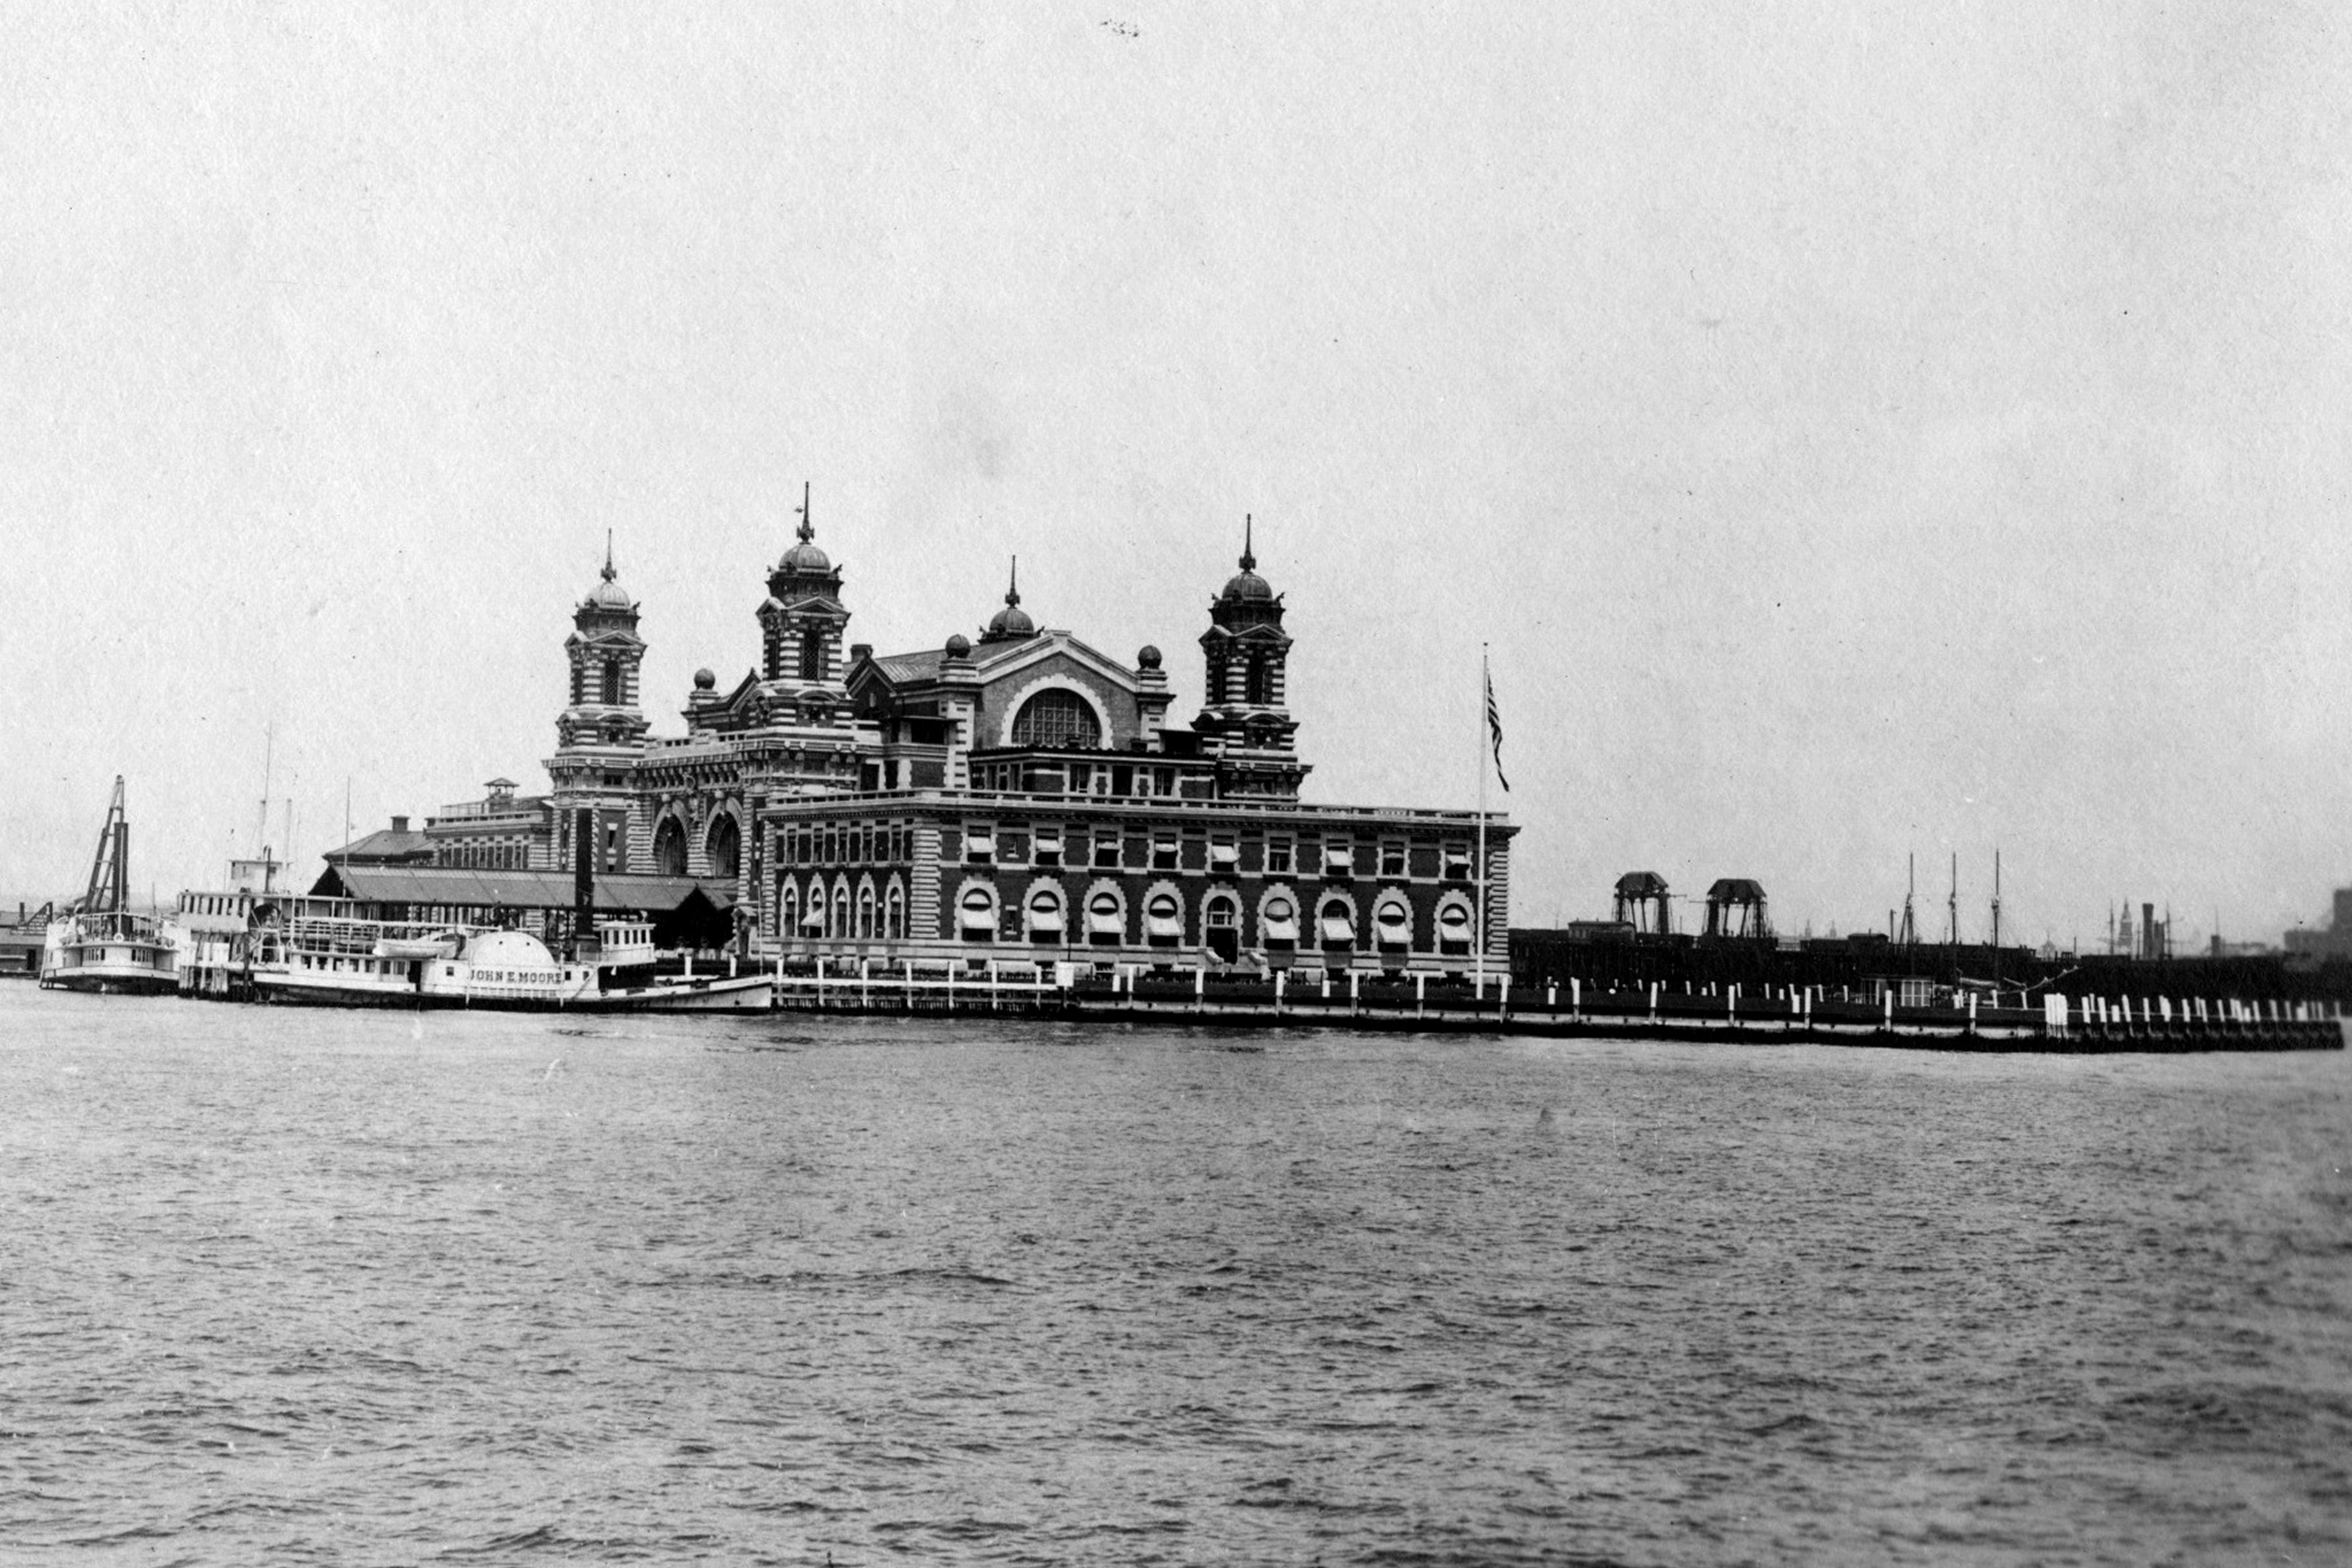 The exterior of the Ellis Island immigration inspection station in 1907.